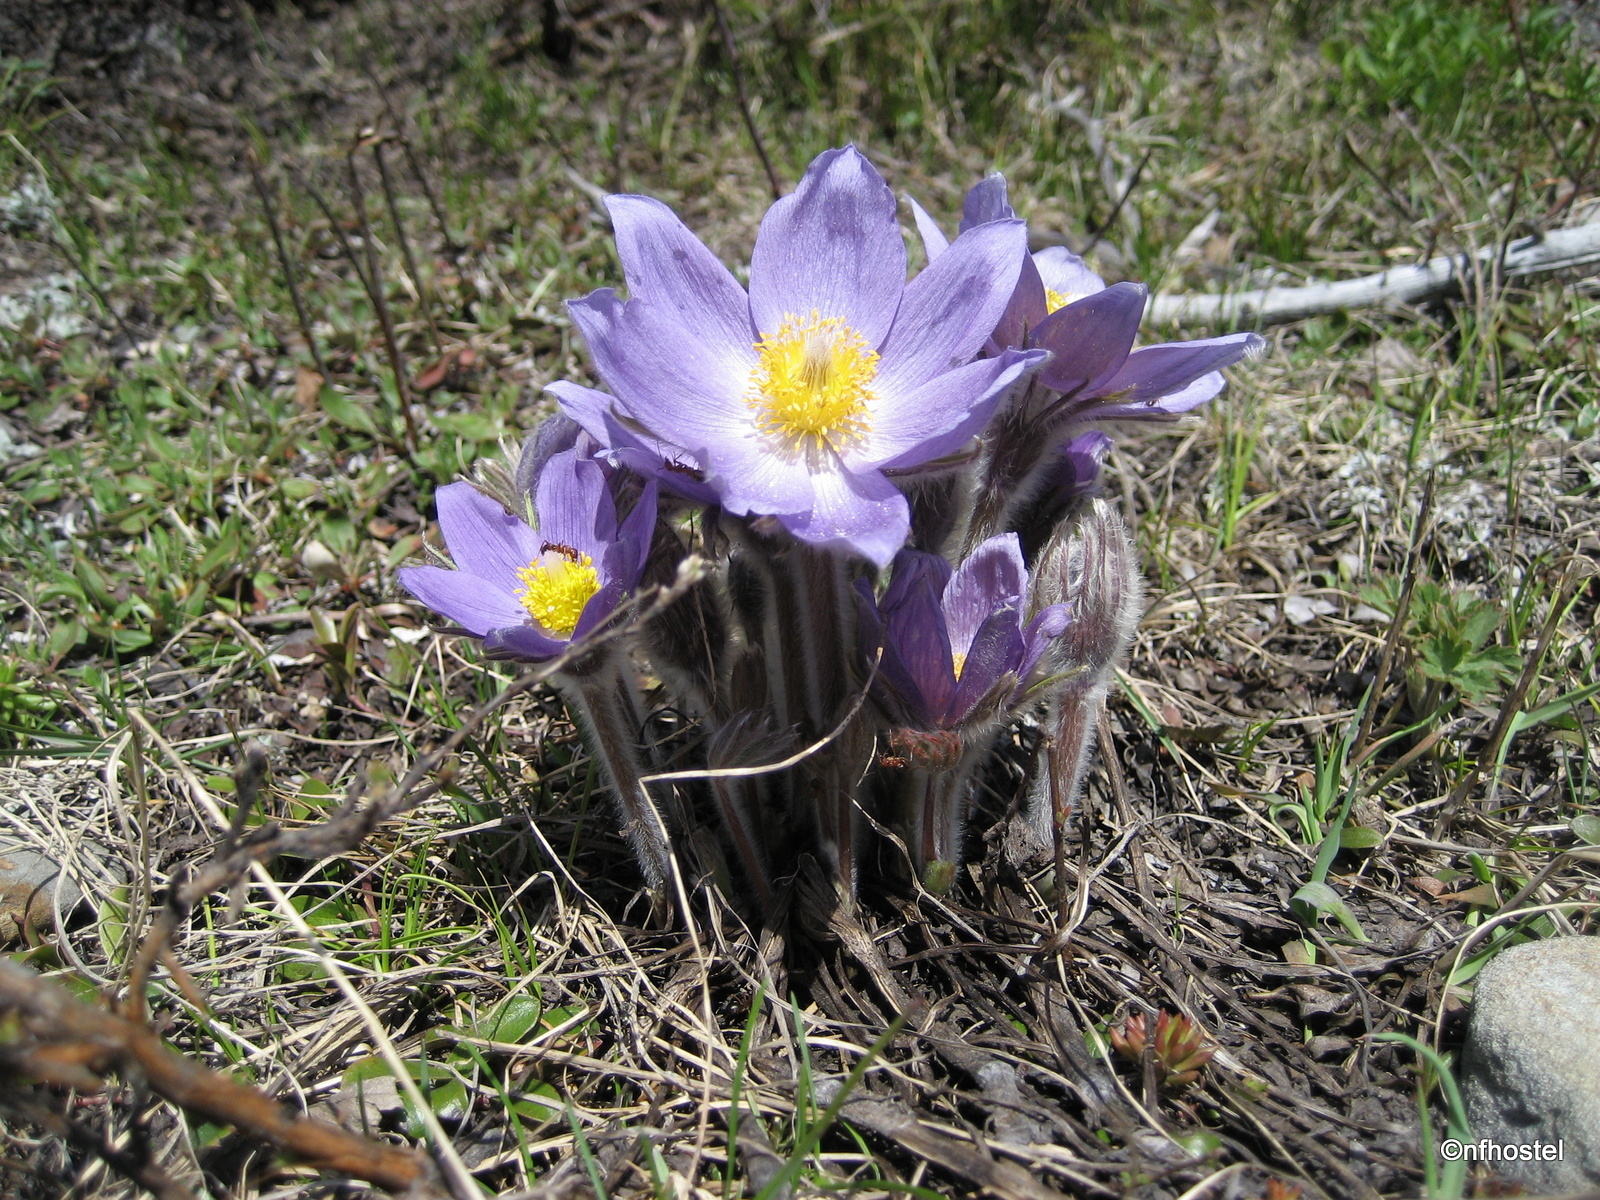 Pasqueflower or Prairie Crocus